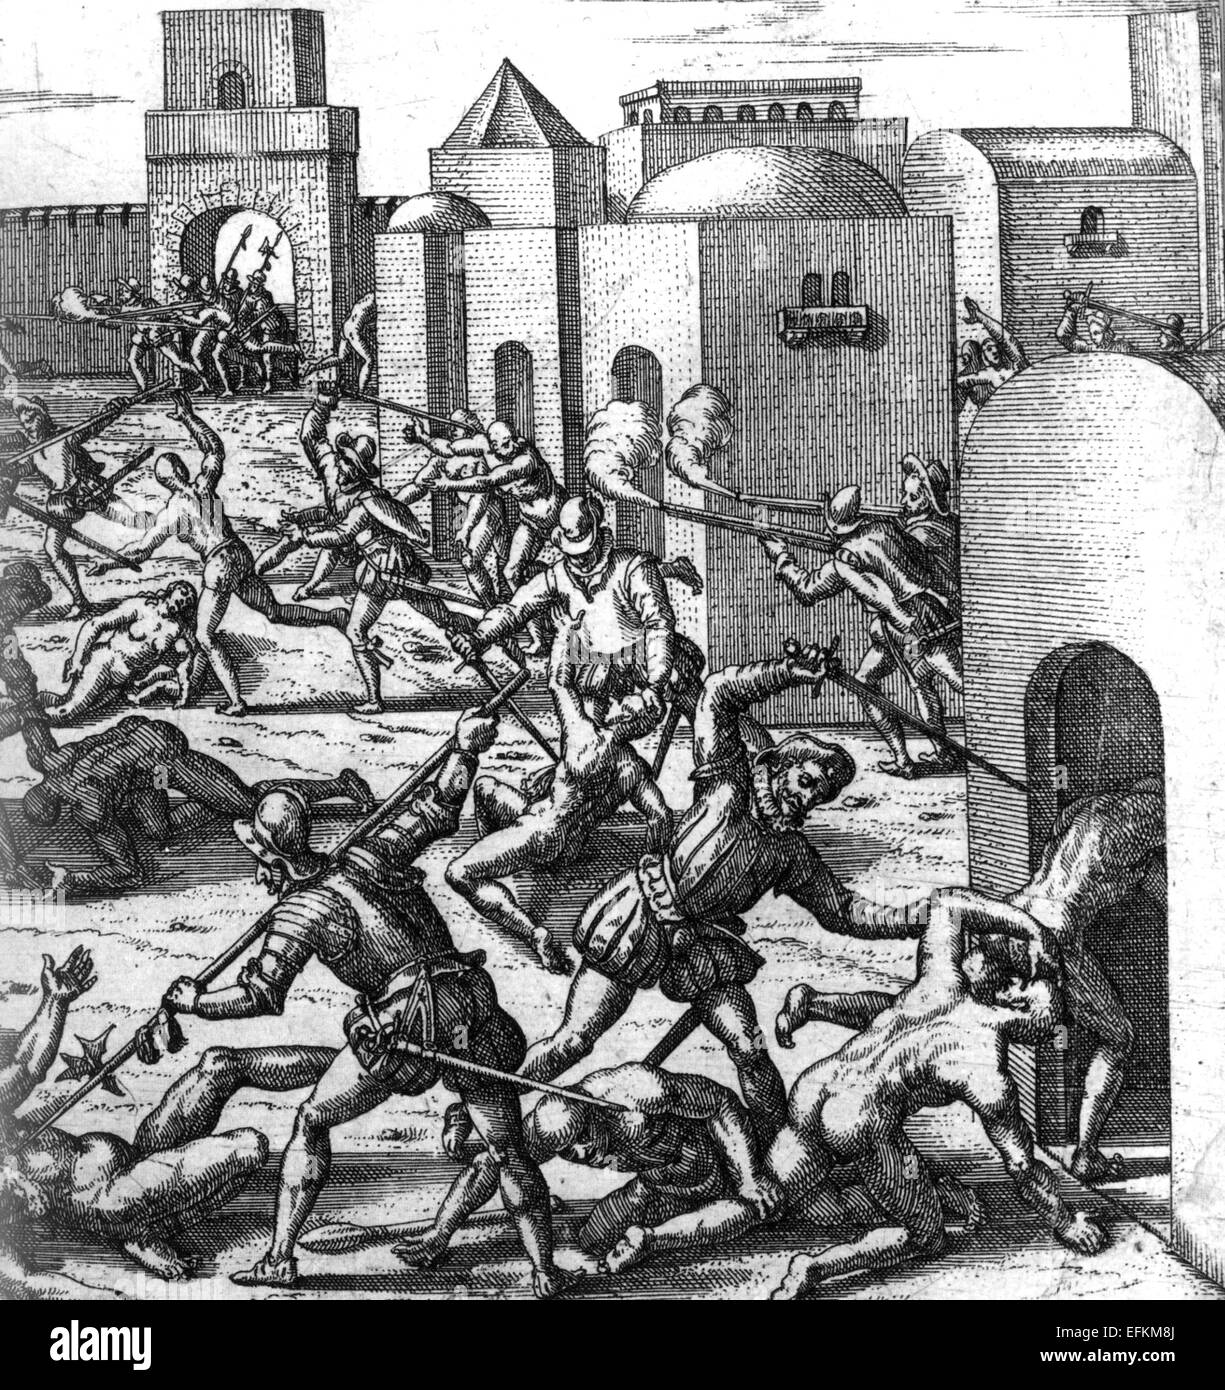 FRANCISCO PIZARRO (c 1471-1541) sacks Cuzco after the siege in 1533